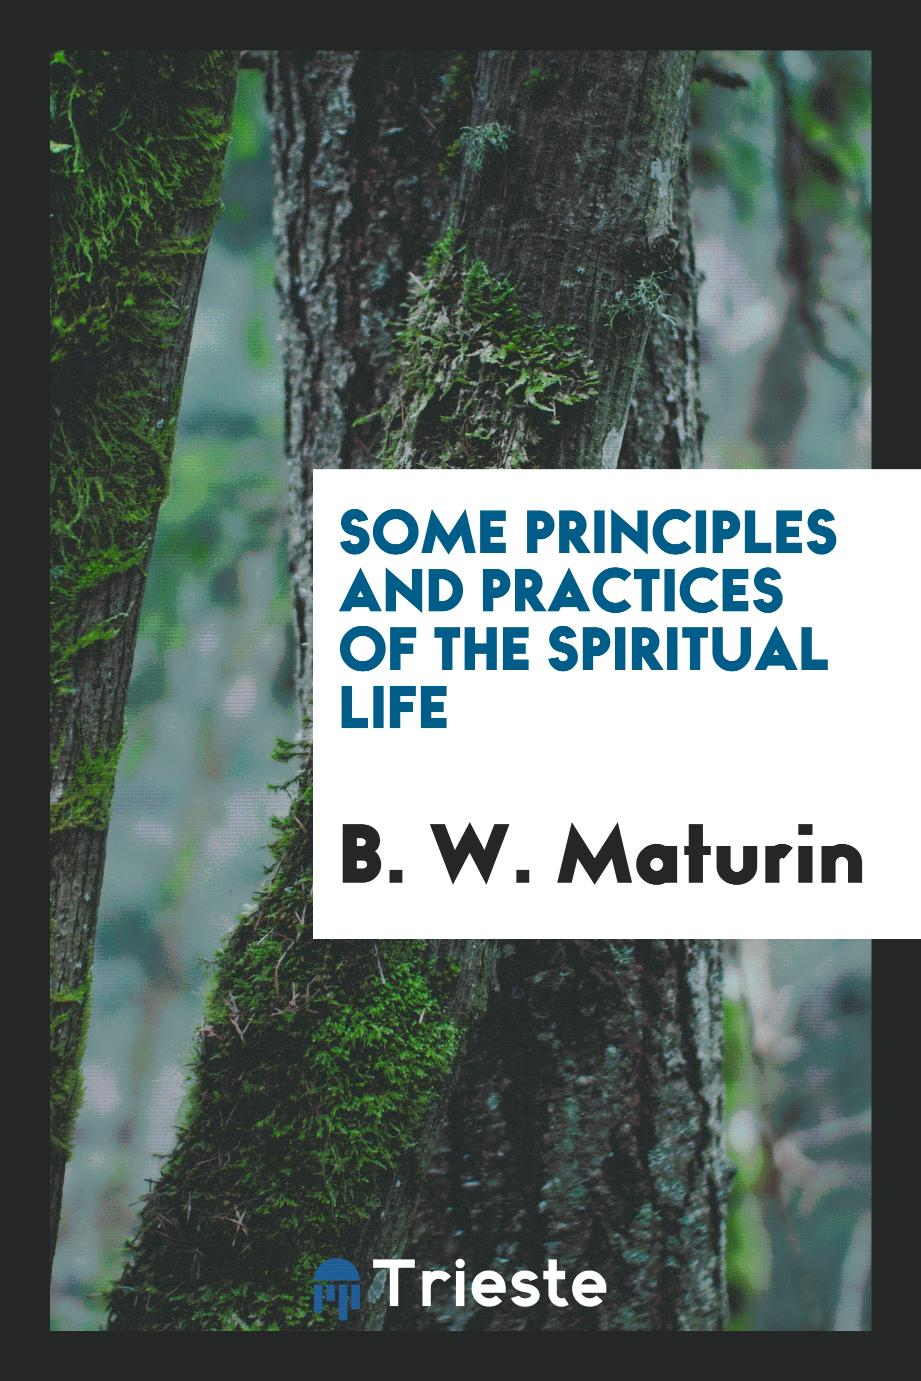 Some principles and practices of the spiritual life